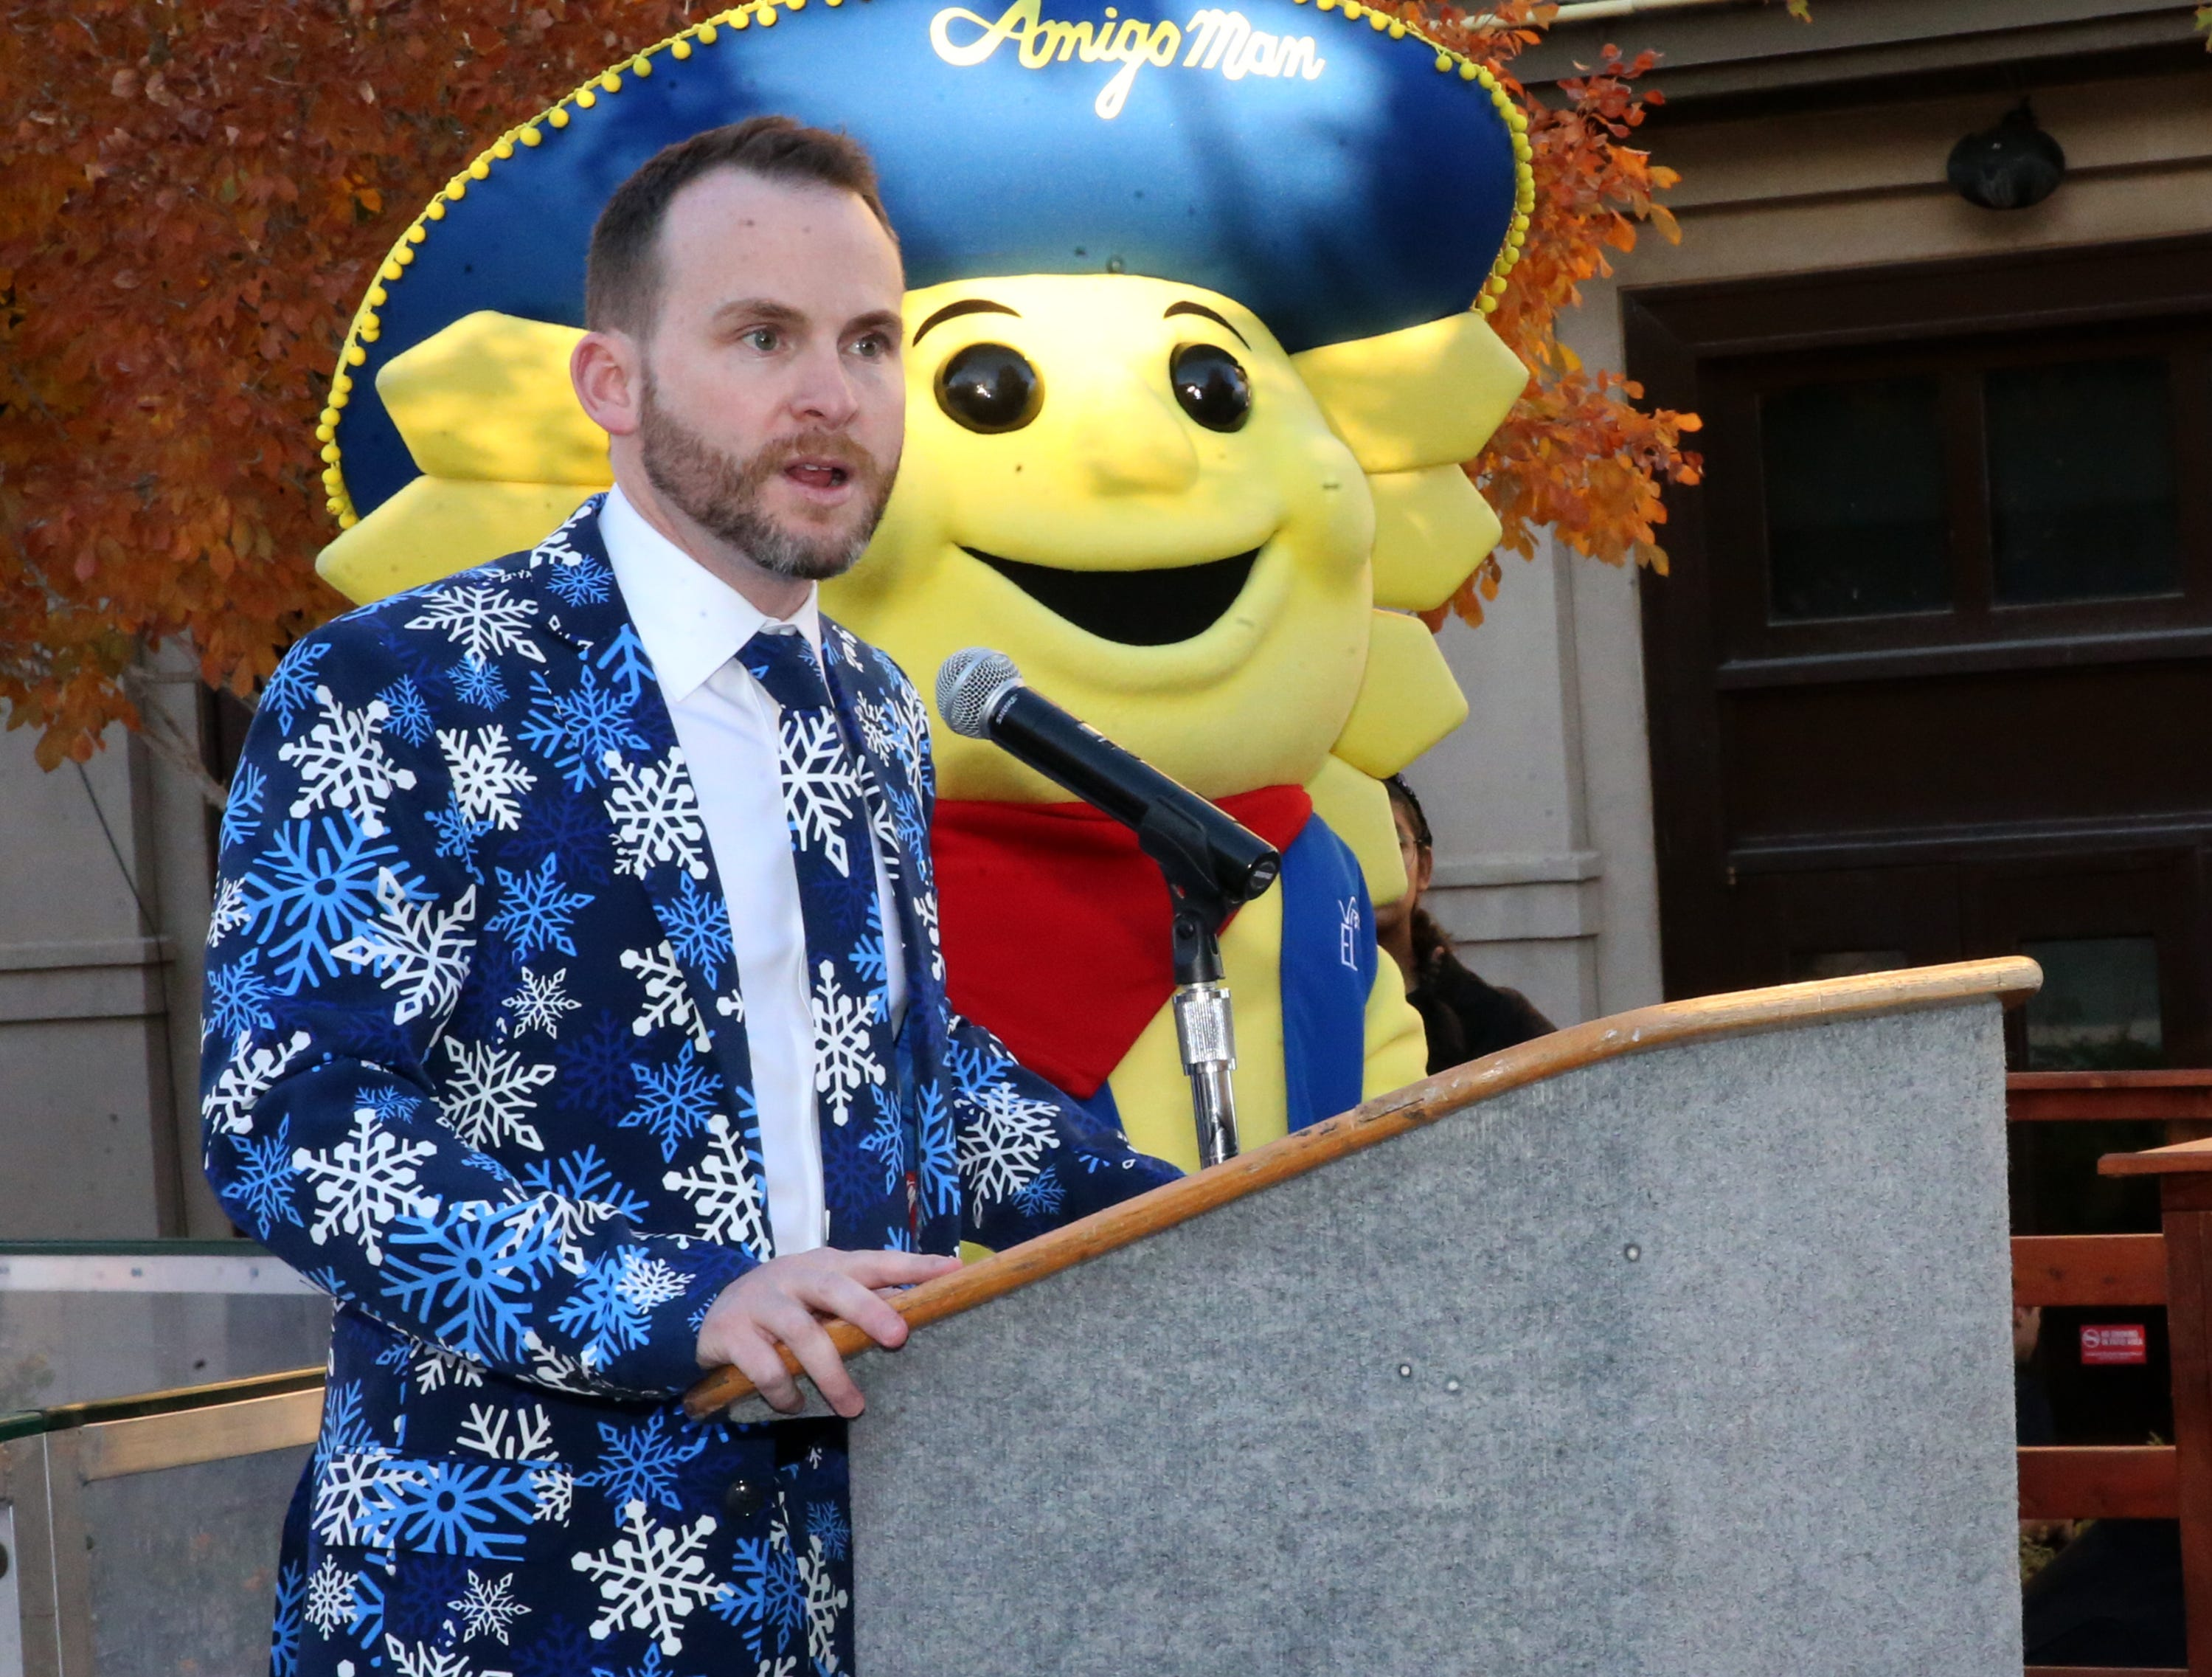 Bryan Crowe, general manager of Destination El Paso, starts a news conference on the opening of the third season of WinterFest on Friday at the Downtown Arts Festival Plaza.